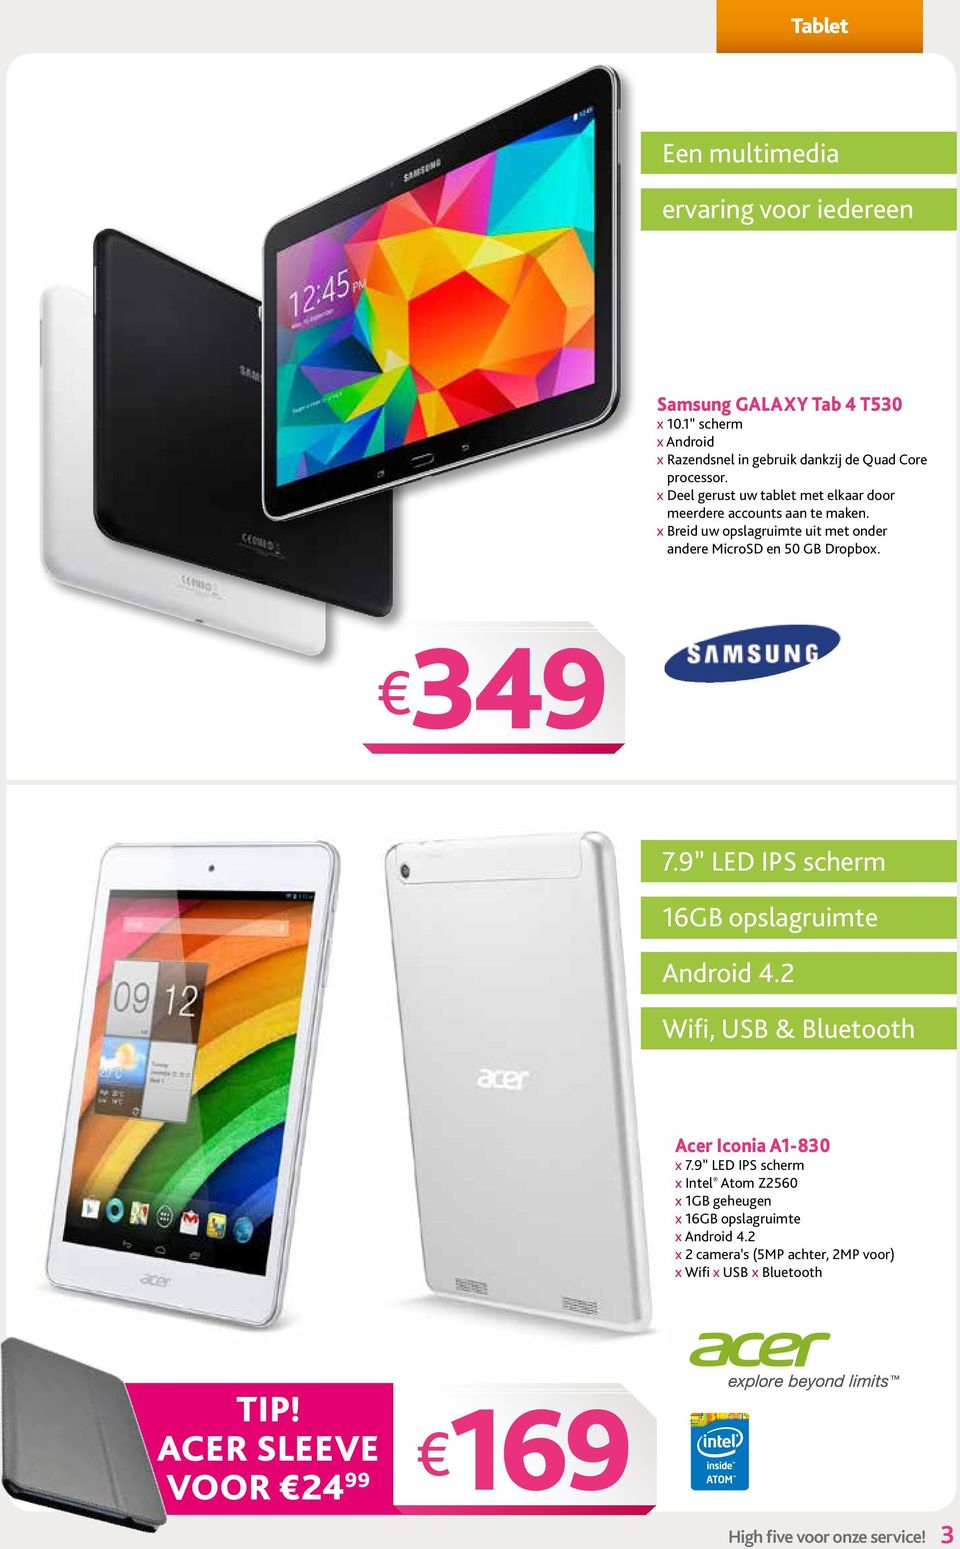 9 LED IPS scherm 16GB opslagruimte Android 4.2 Wifi, USB & Bluetooth Acer Iconia A1-830 x 7.